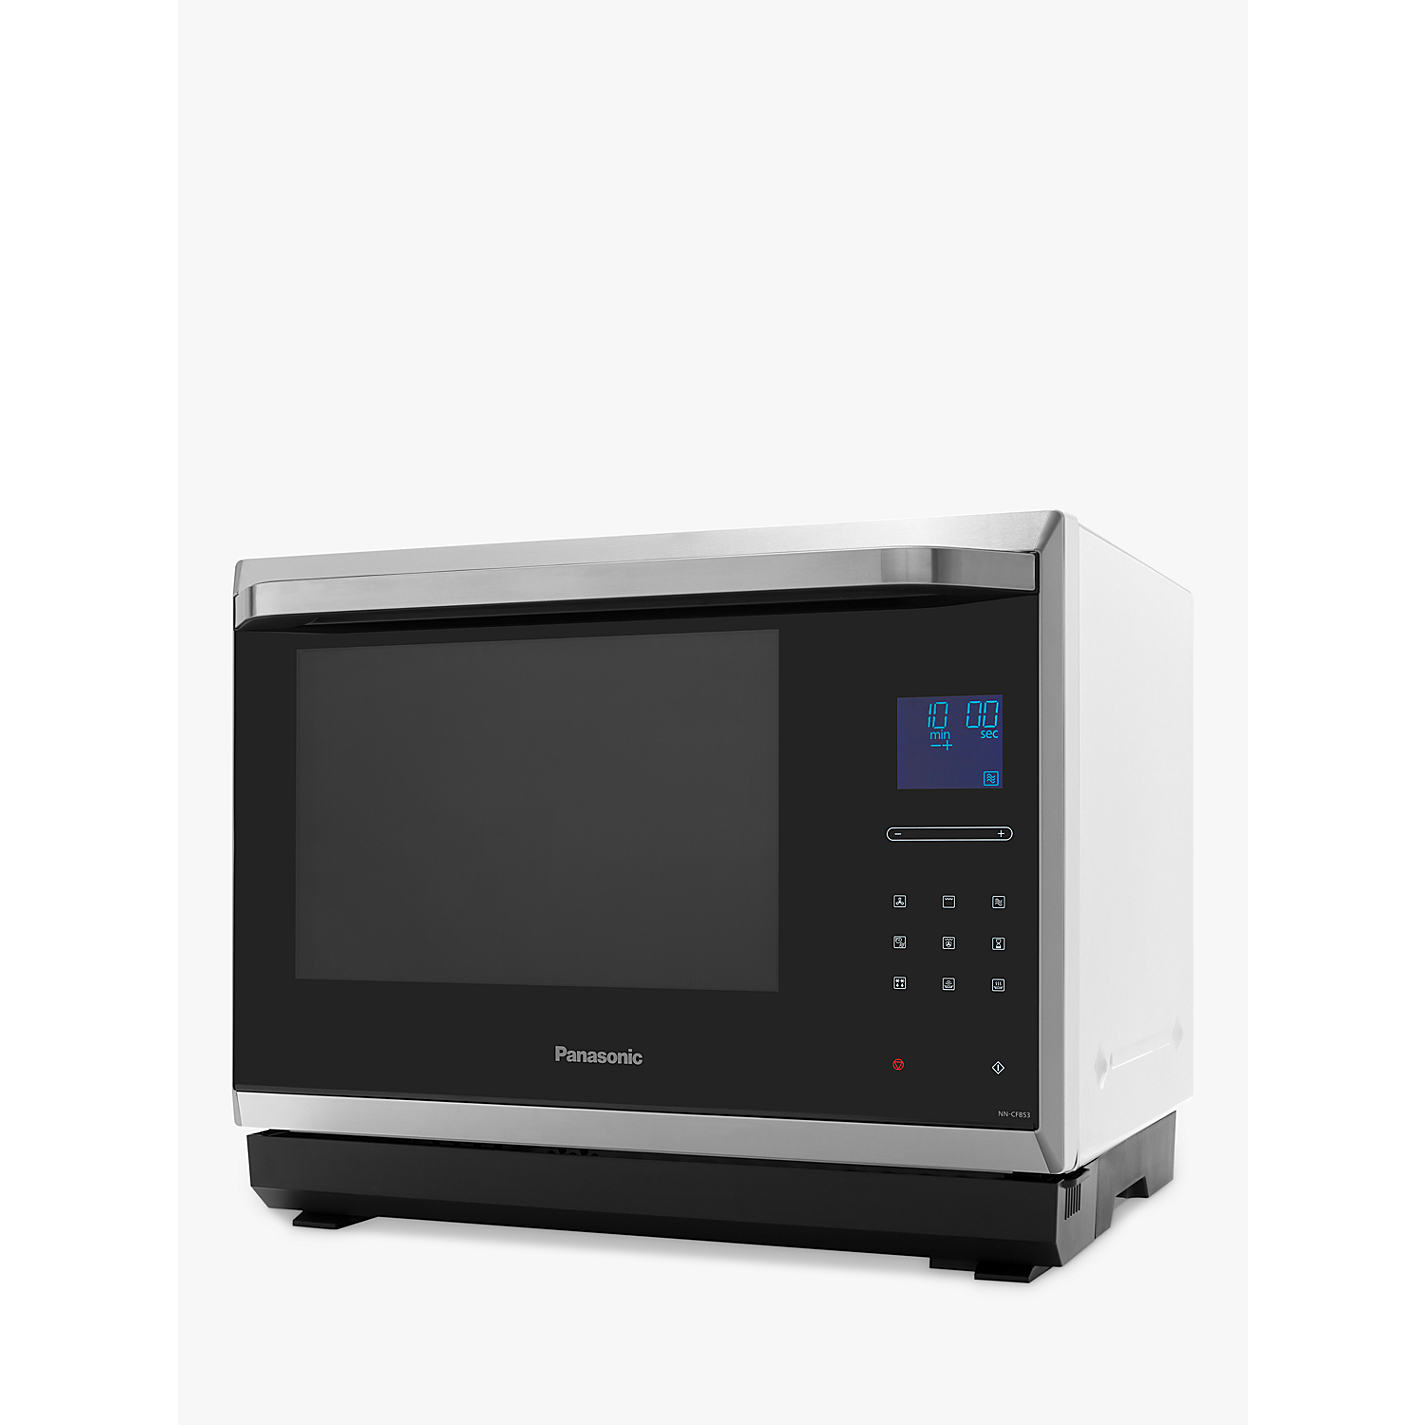 Panasonic Nn Cf853w Combination Microwave Black White Online At Johnlewis